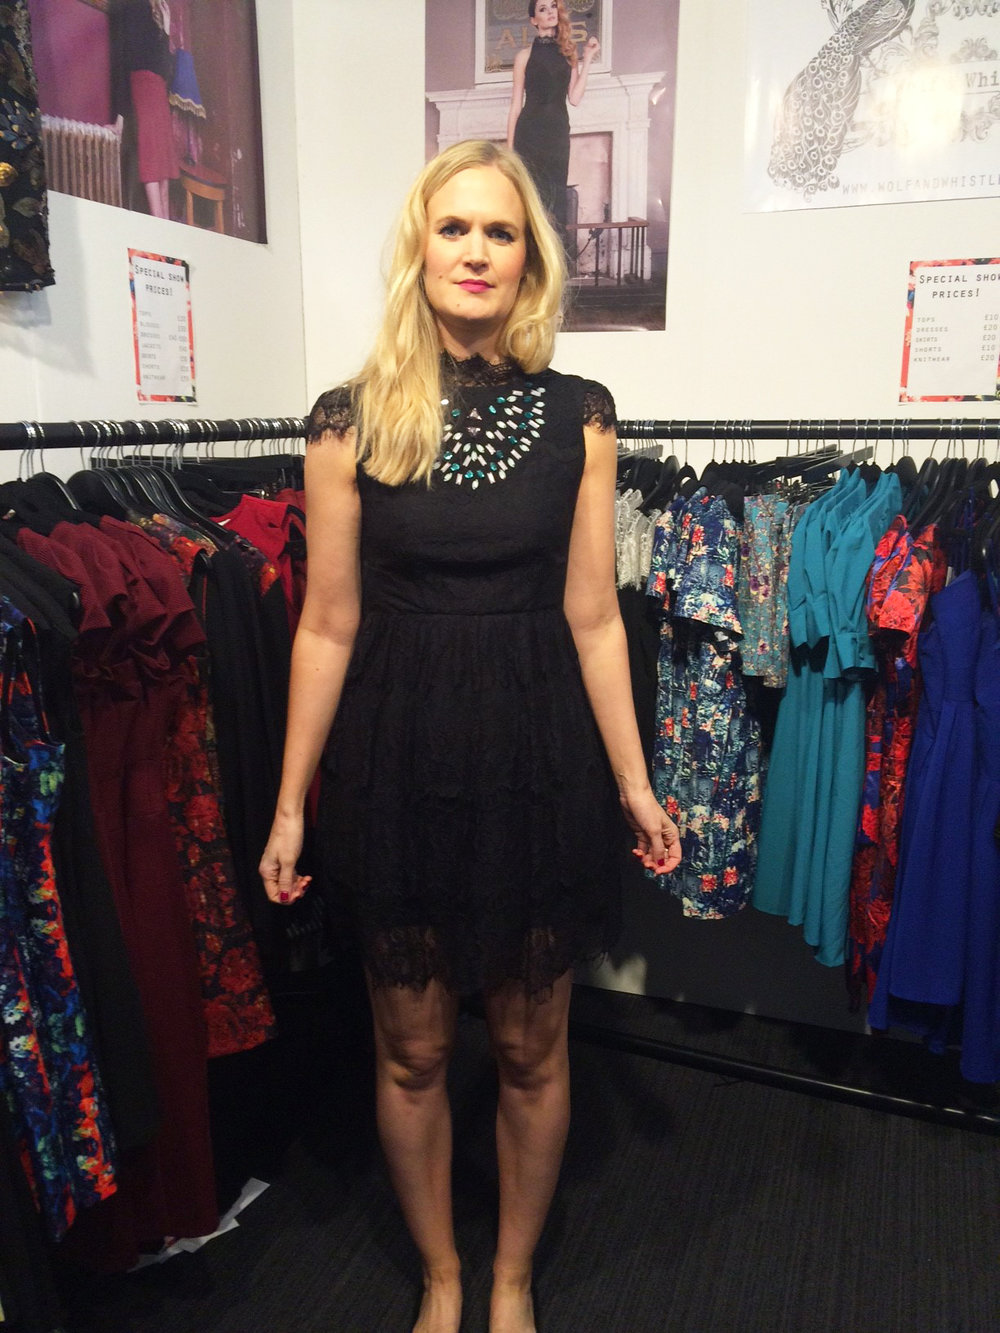 Designer Louise wears the  Beaded Eyelash Lace Dress , which you can now win in our  Halloween Giveaway !!